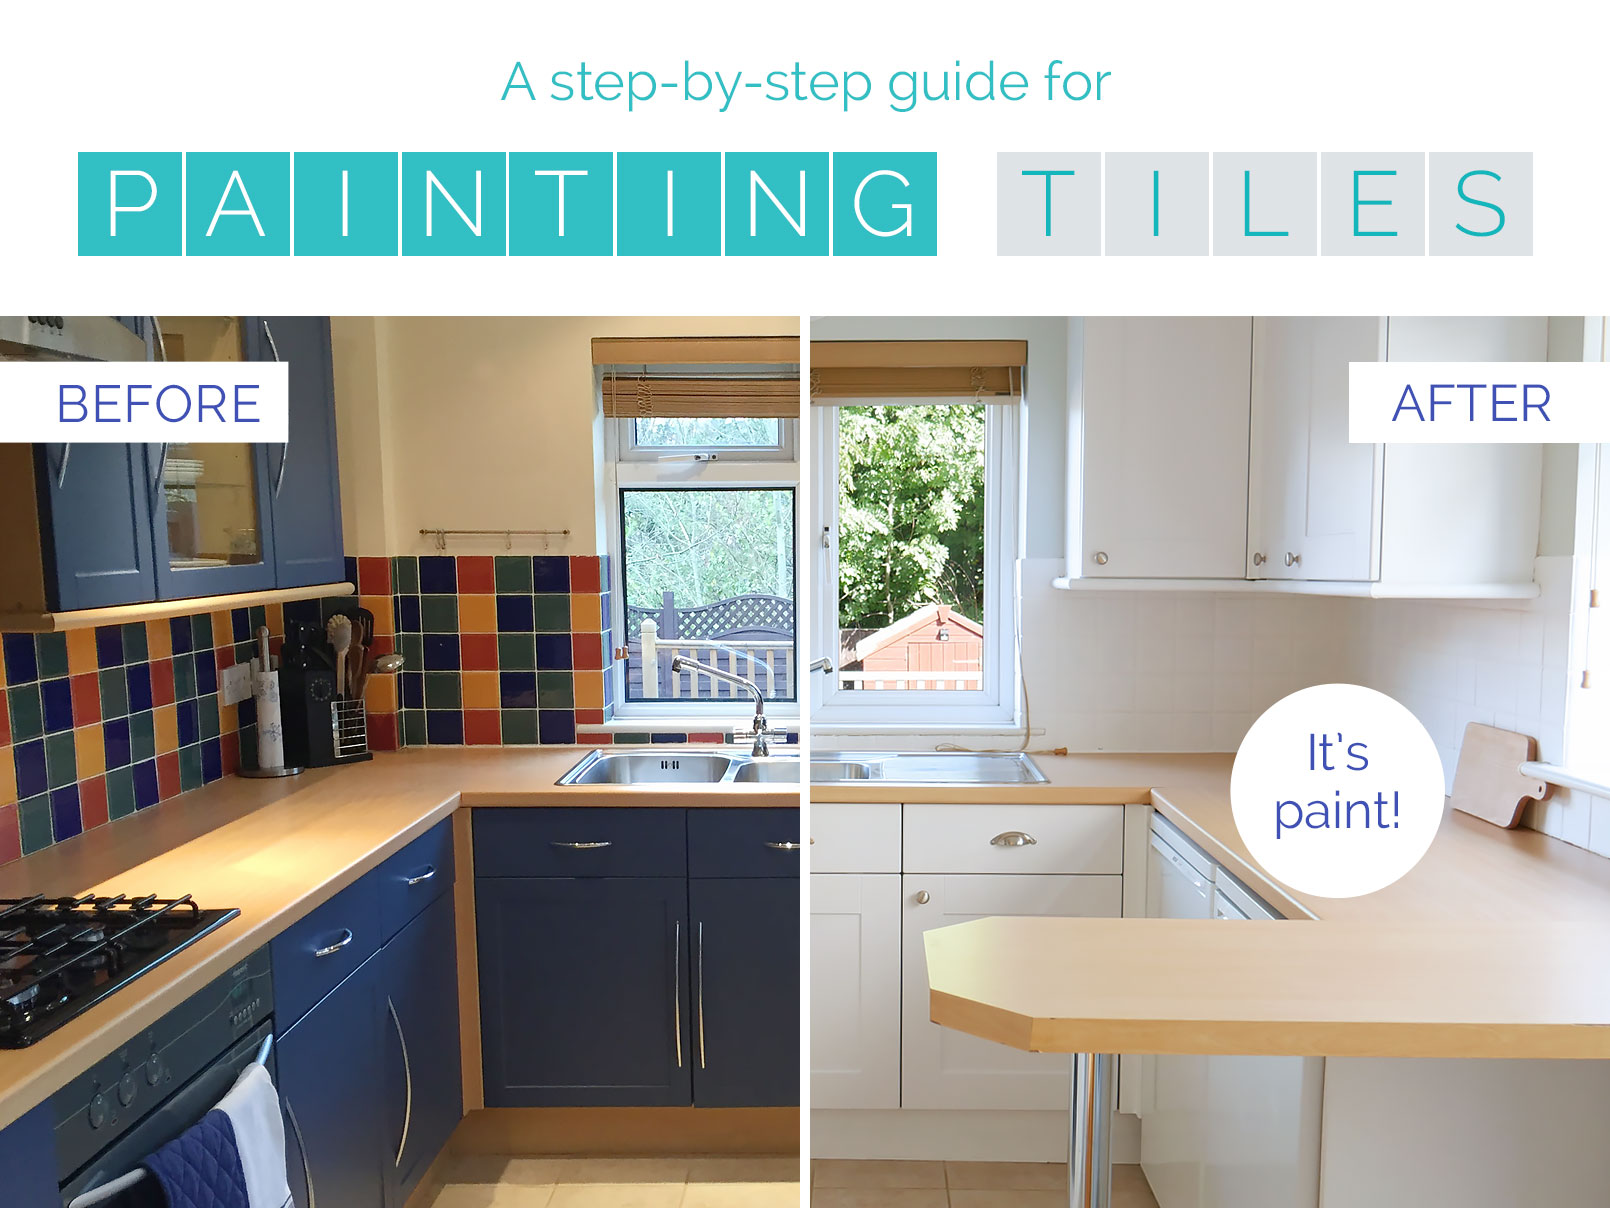 01 Oct Kitchen Makeover On A Budget How To Paint Tiles